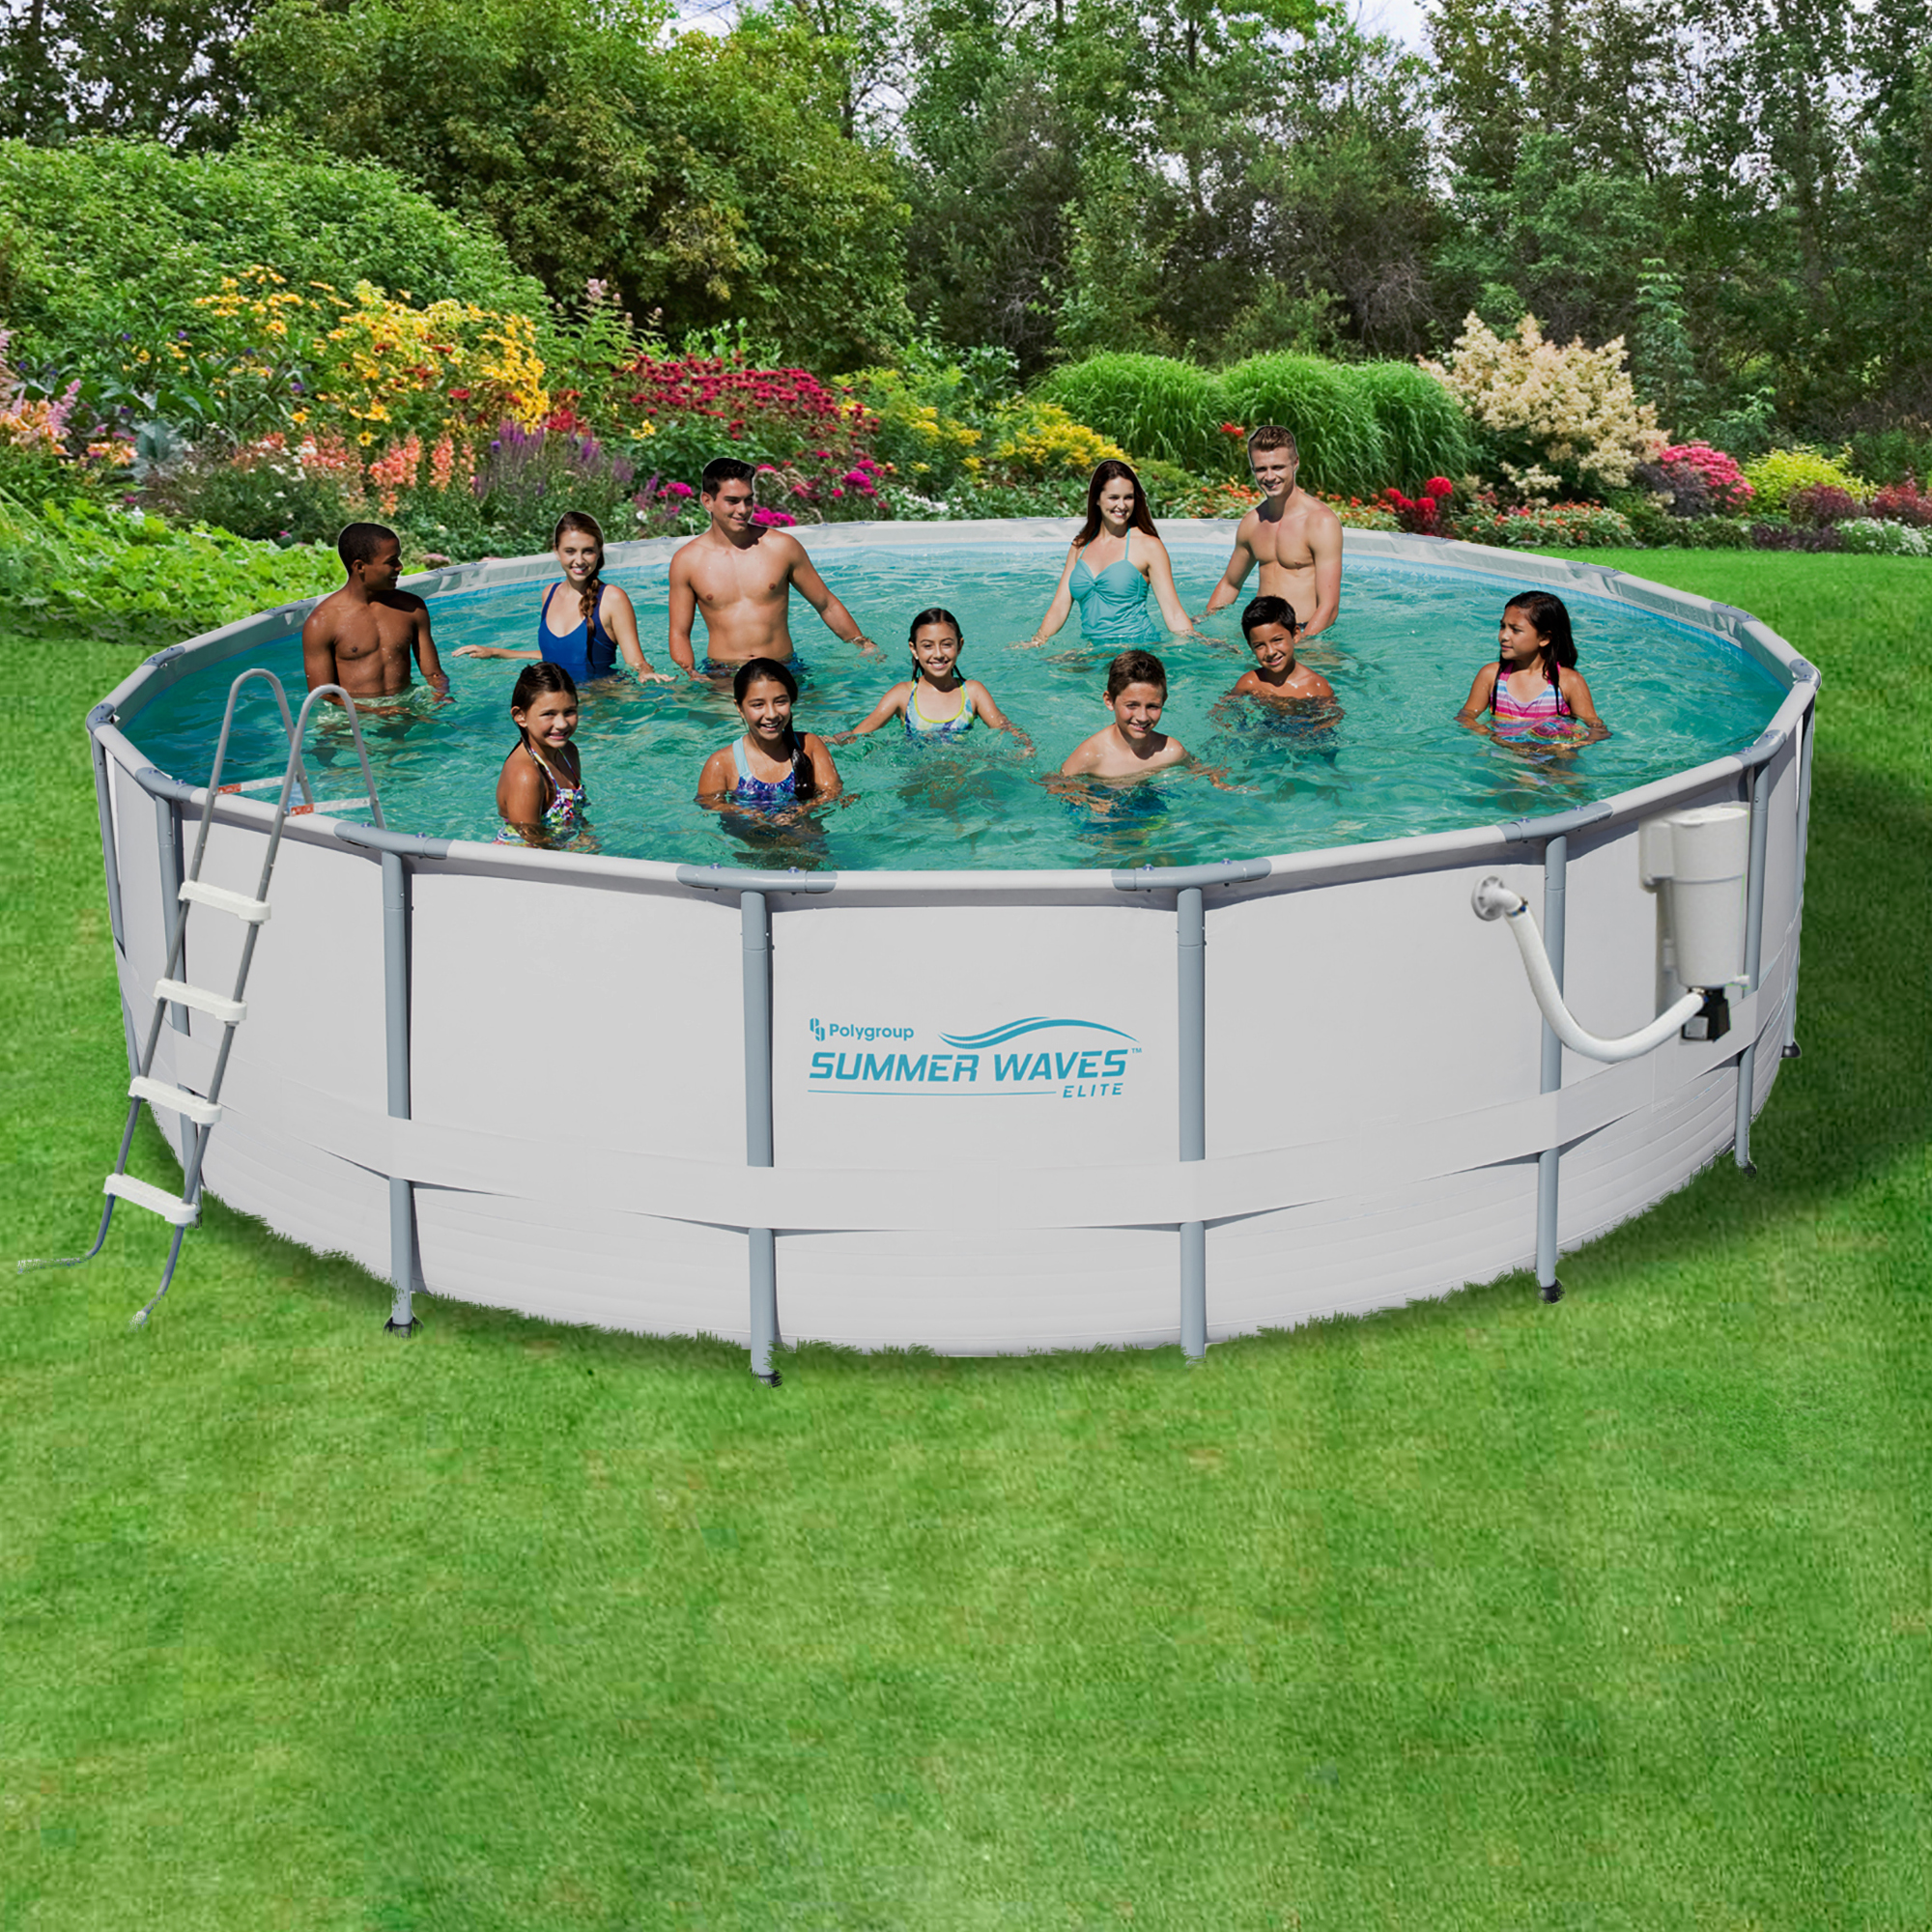 Summer Waves Elite 18-ft Round 52-in Deep Metal Frame Swimming Pool Package